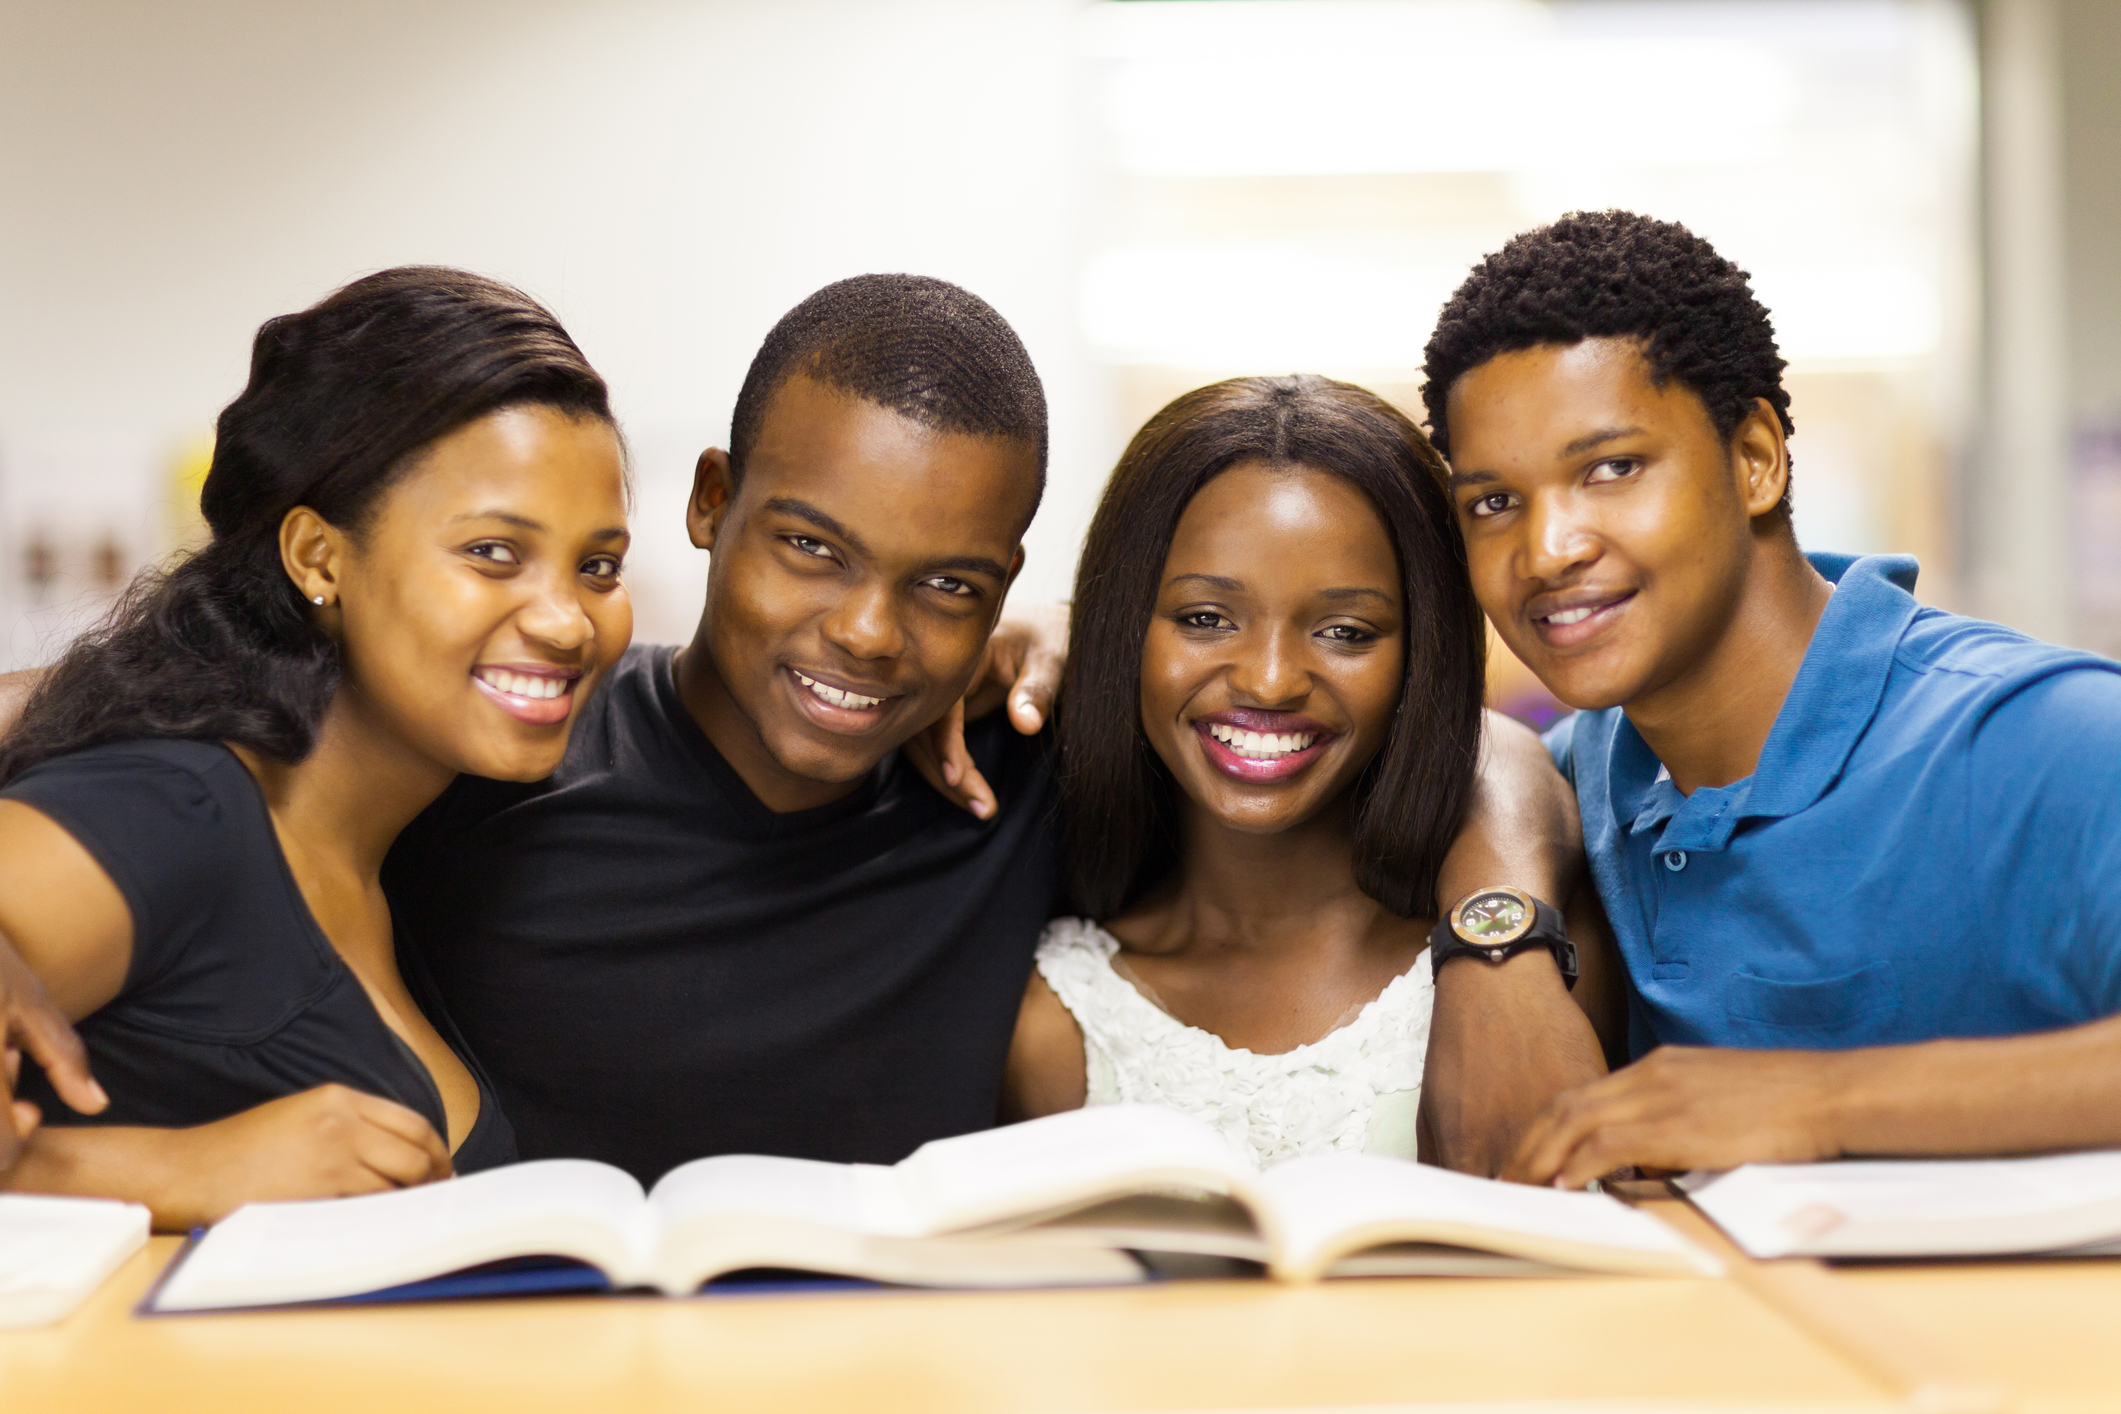 Special Black History Month Blog What The Other Wes Moore Meant To Me  Academic Writing Reader Custom also Essay Examples High School  Examples Of A Thesis Statement For A Narrative Essay